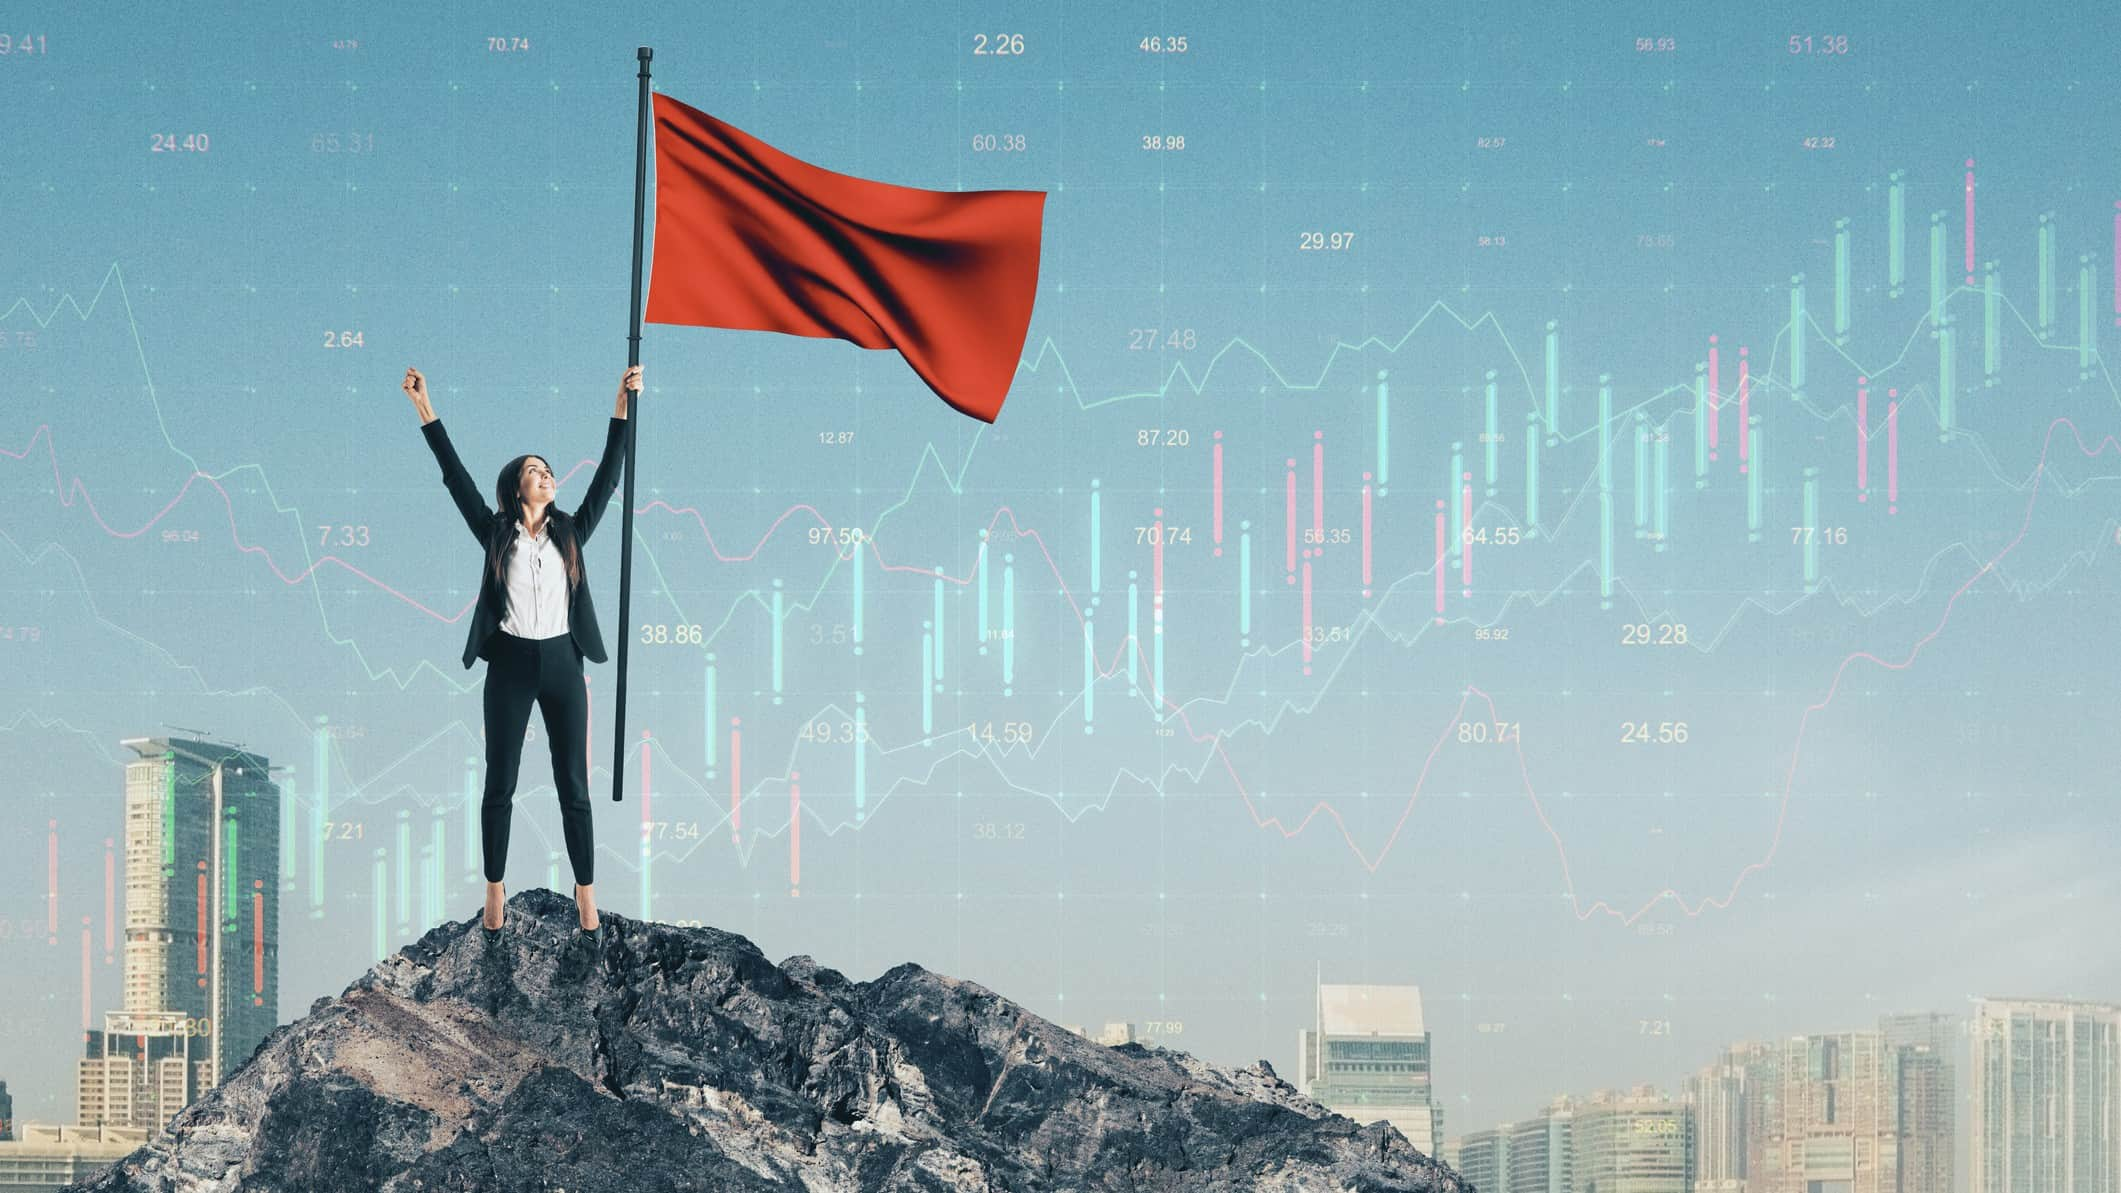 woman holding flagpole on top of peak against backdrop of city and stock chart